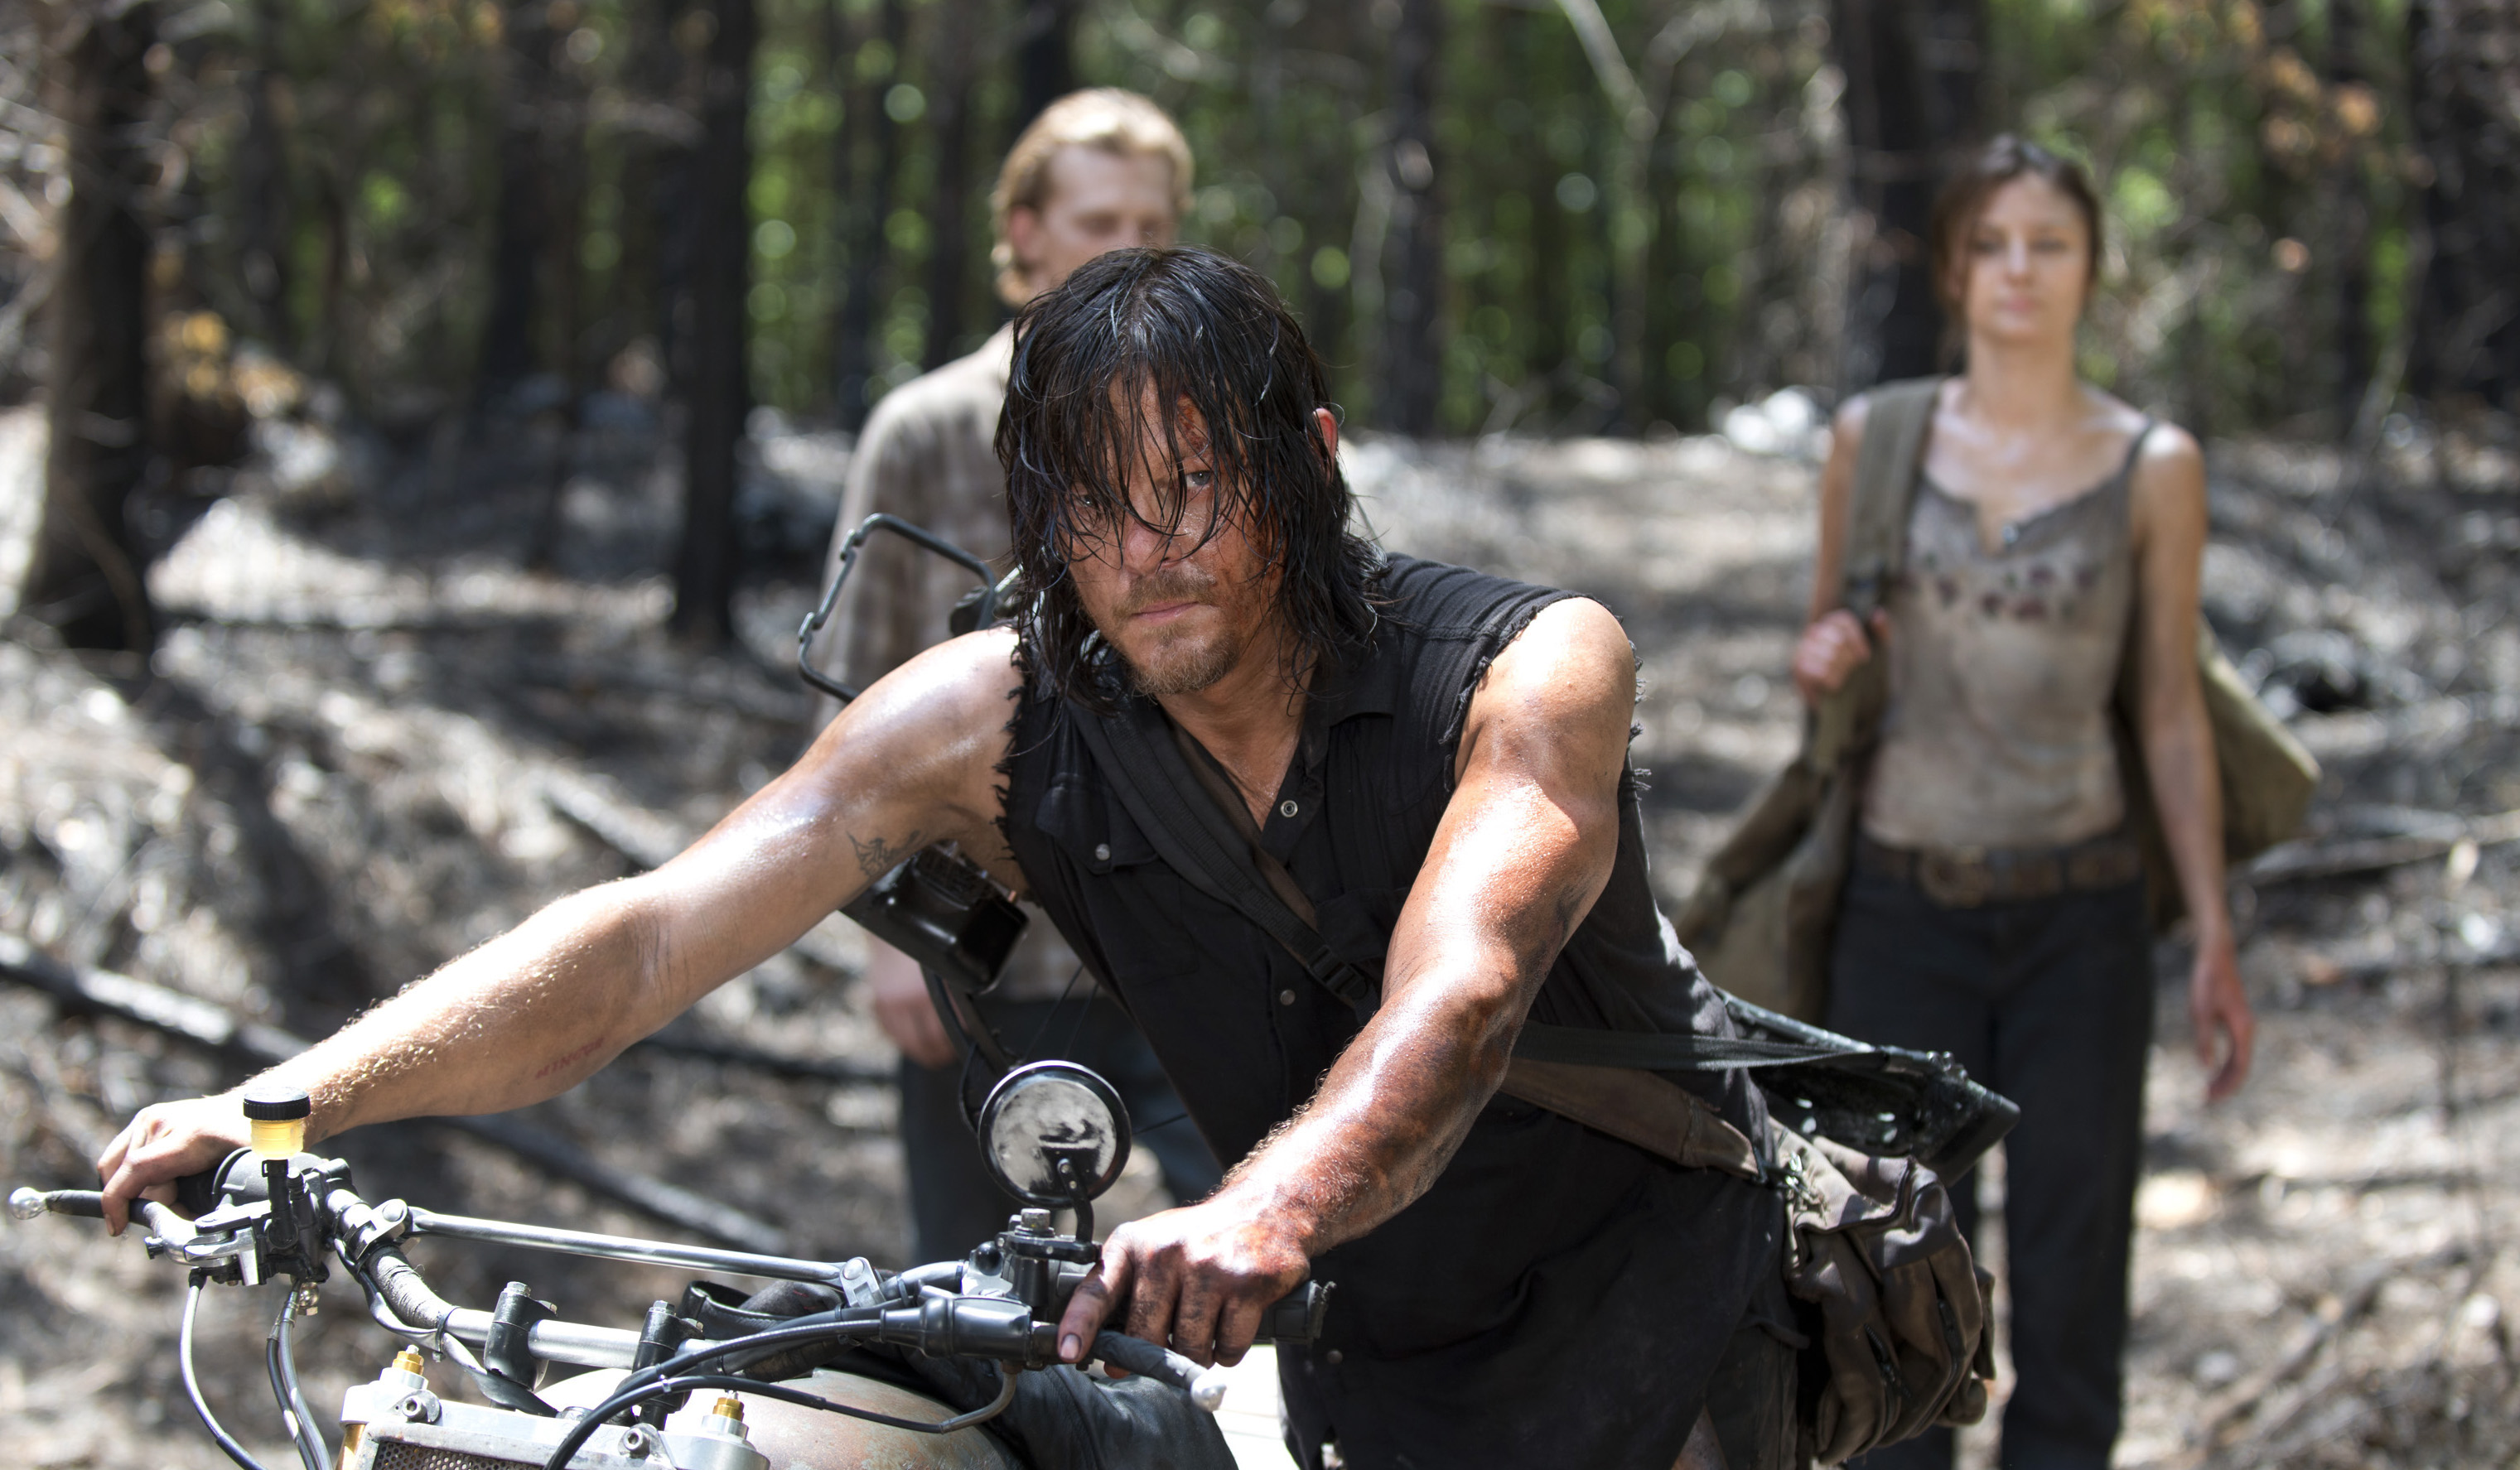 Daryl-Walks-Through-the-Woods-in-The-Walking-Dead-Season-6-Episode-6